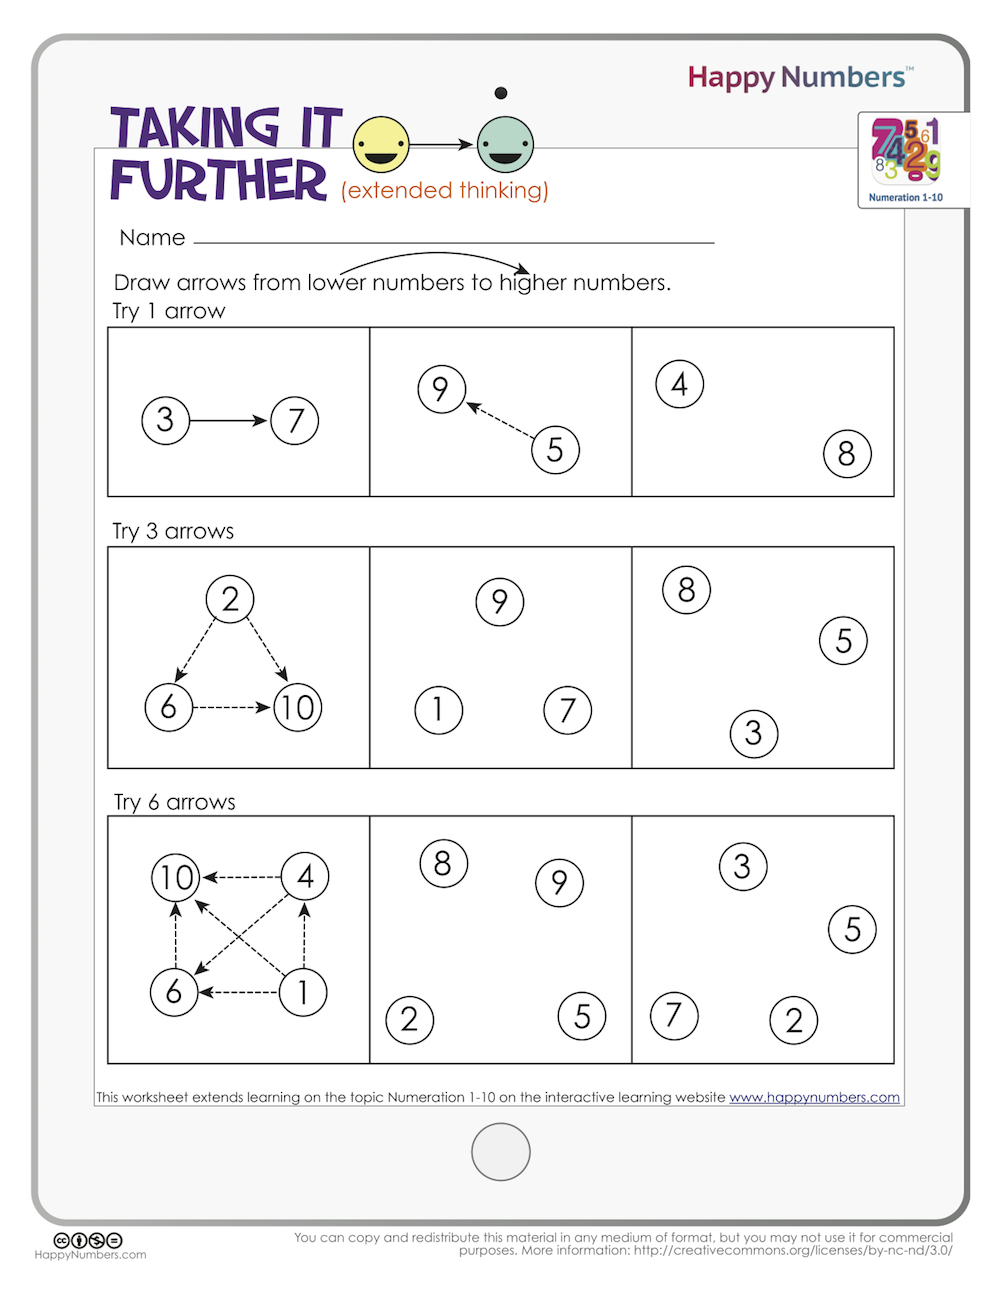 Advanced Math for K-1: Digging Deeper into Numeration